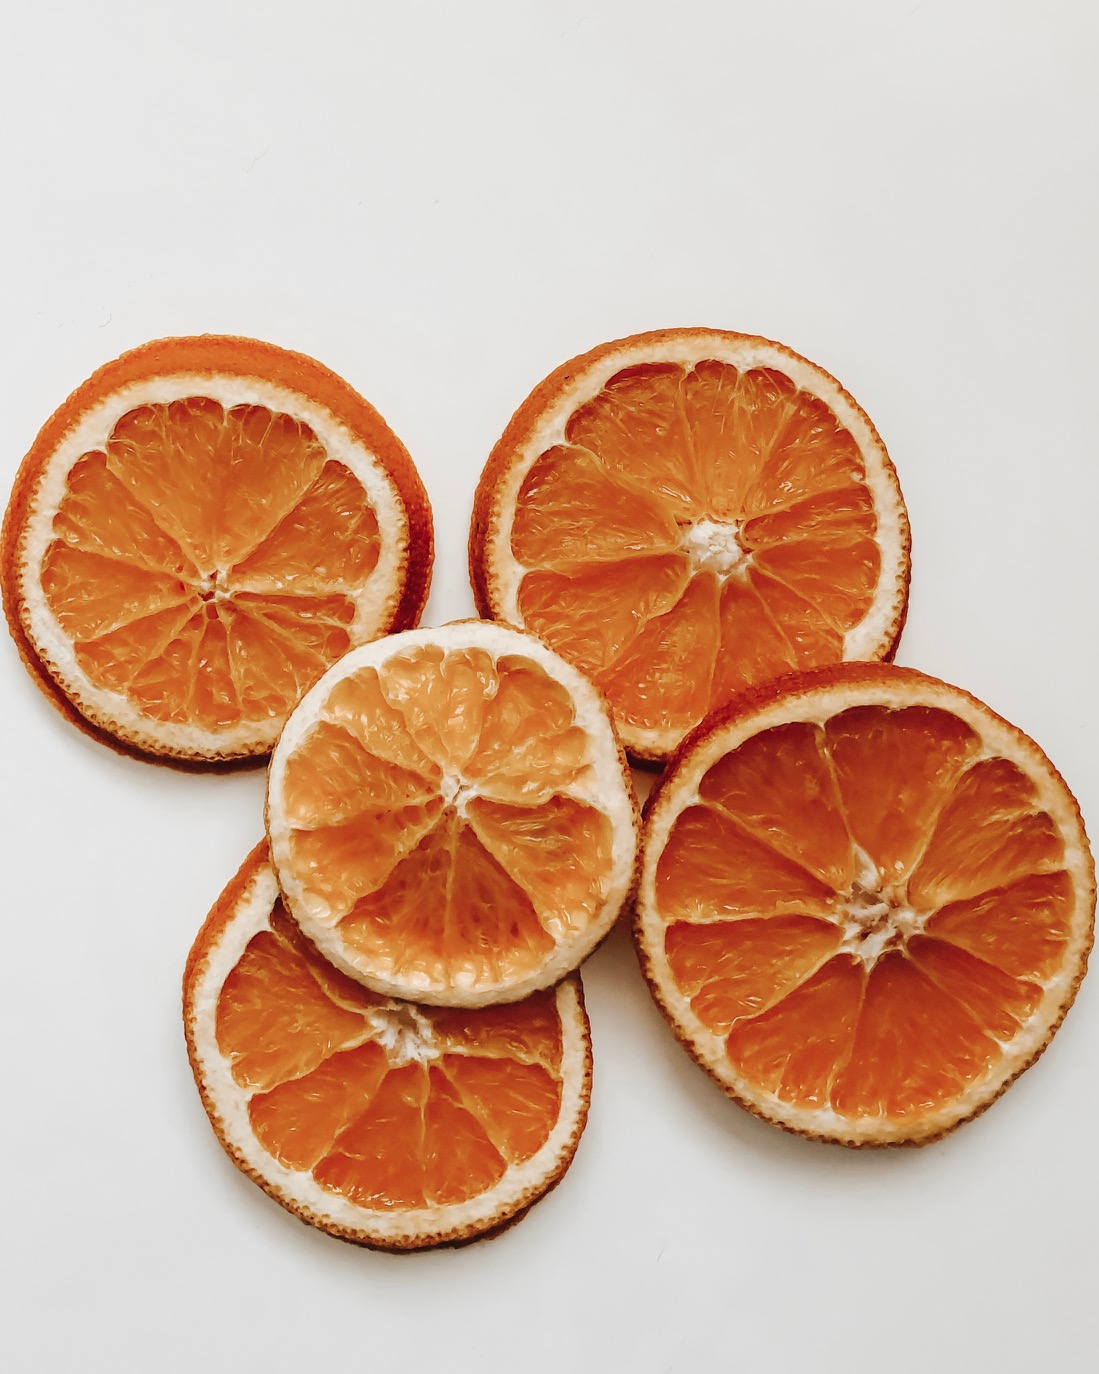 How to Make Dried Orange Slices for Decorating